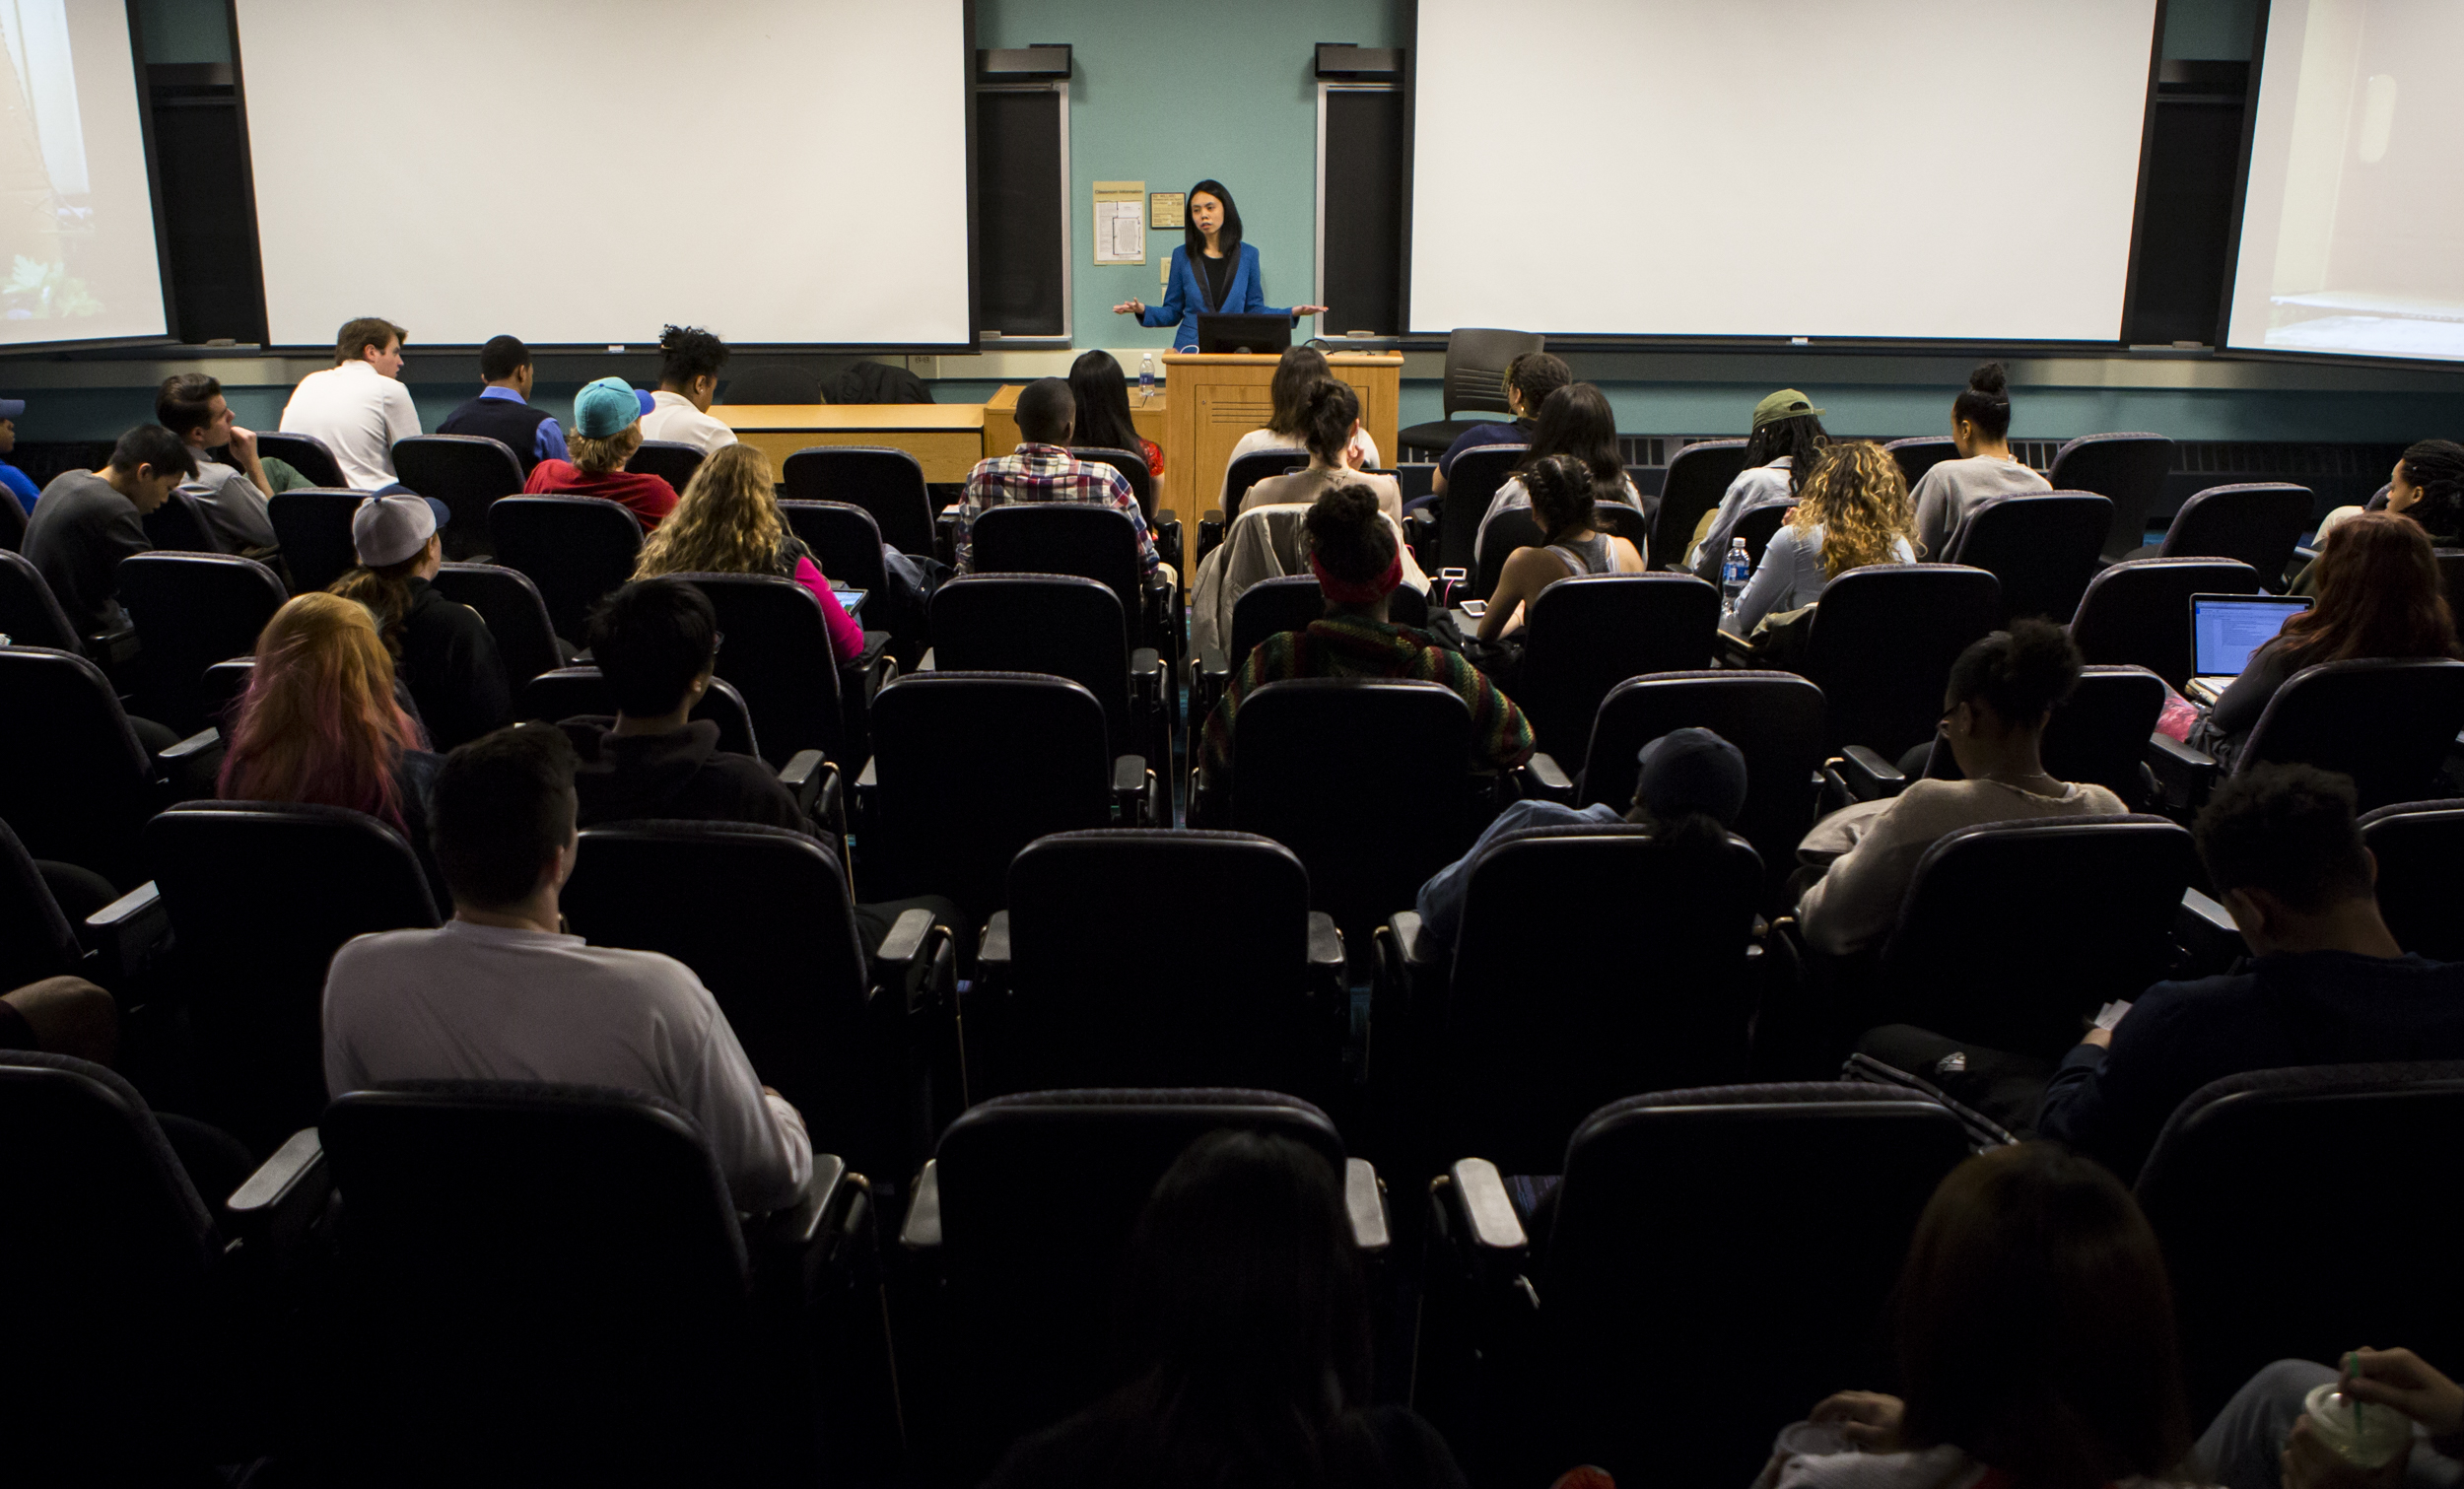 CNN Money multi-platform editor Leezel Tanglao speaks to students about creating success using digital media and platforms in the Willard Building on Thursday, March 31, 2016.